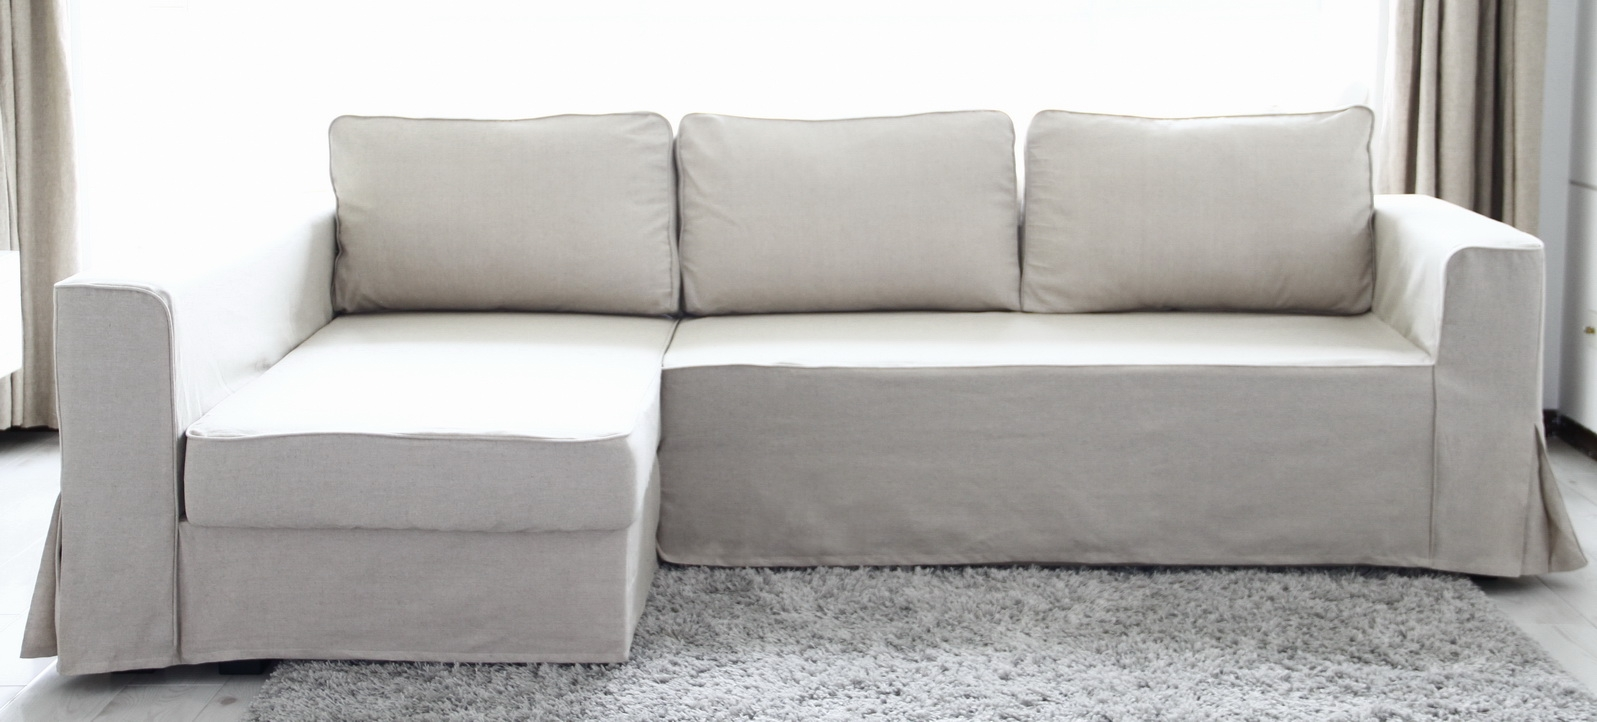 Featured Image of Chaise Sofa Covers